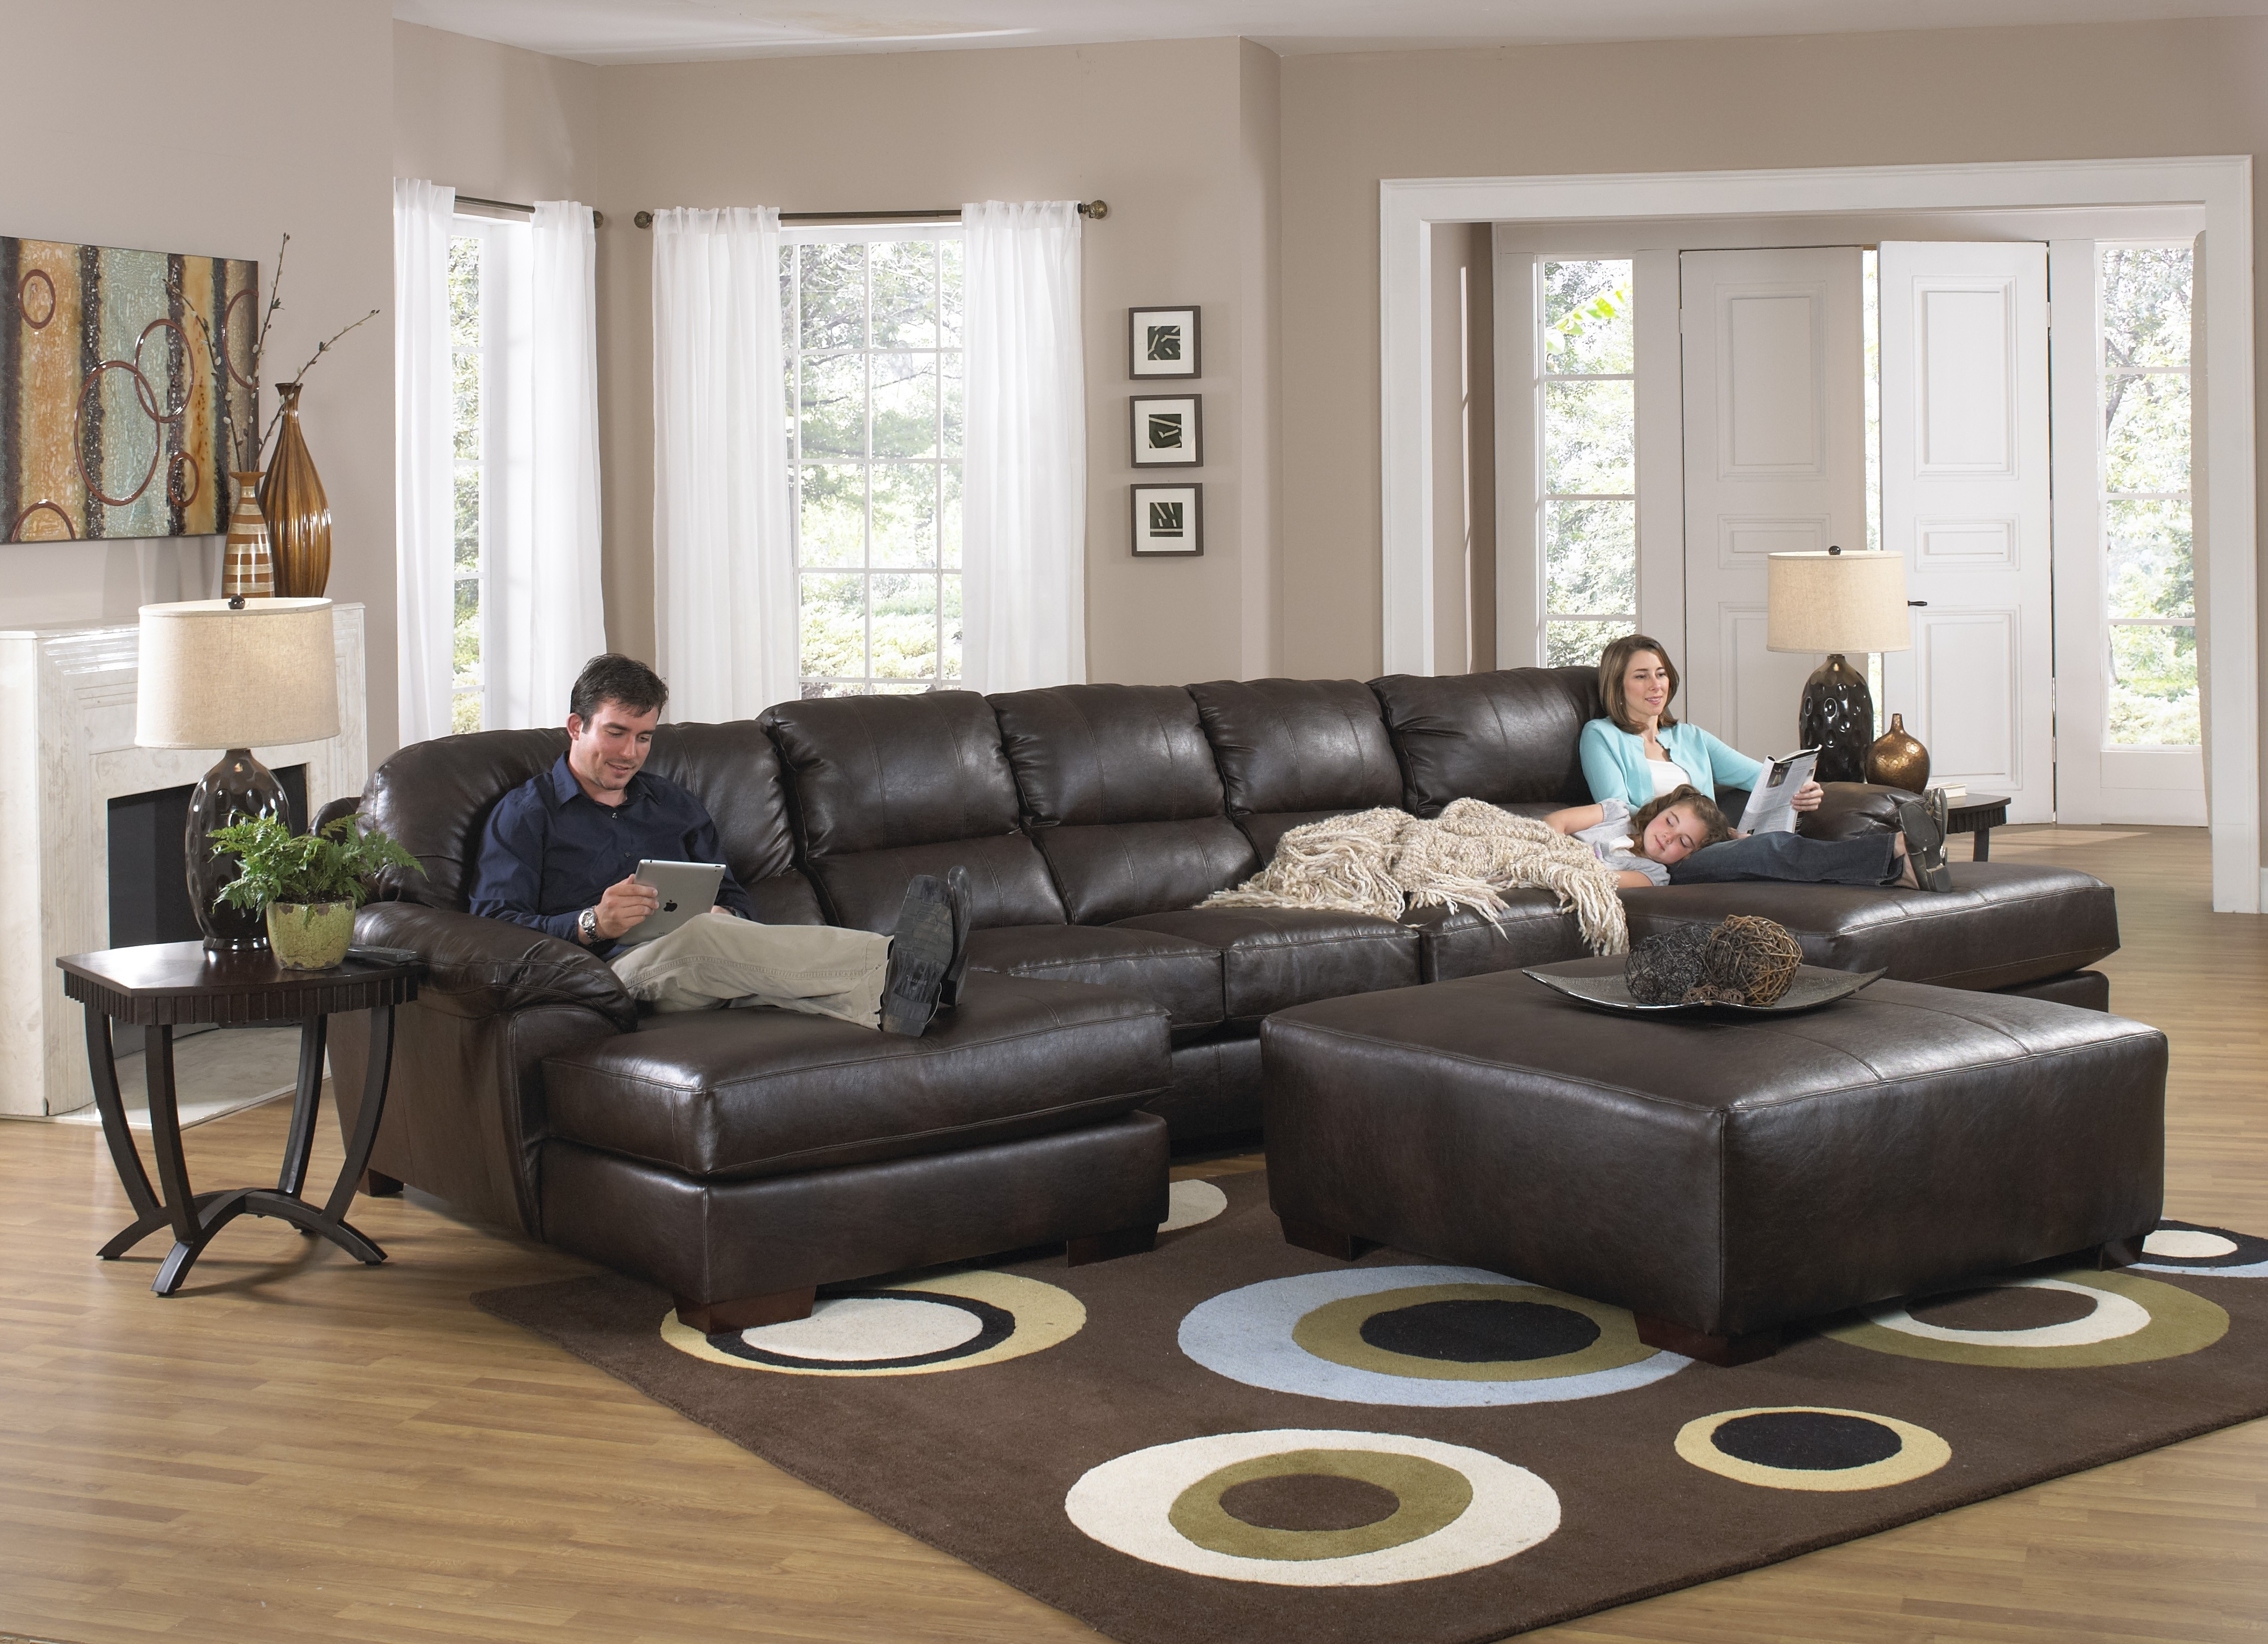 Most Recent Sectional Couches With Recliner And Chaise In Unique Sectional Sofa With Chaise And Recliner 41 Sofas And (View 7 of 15)